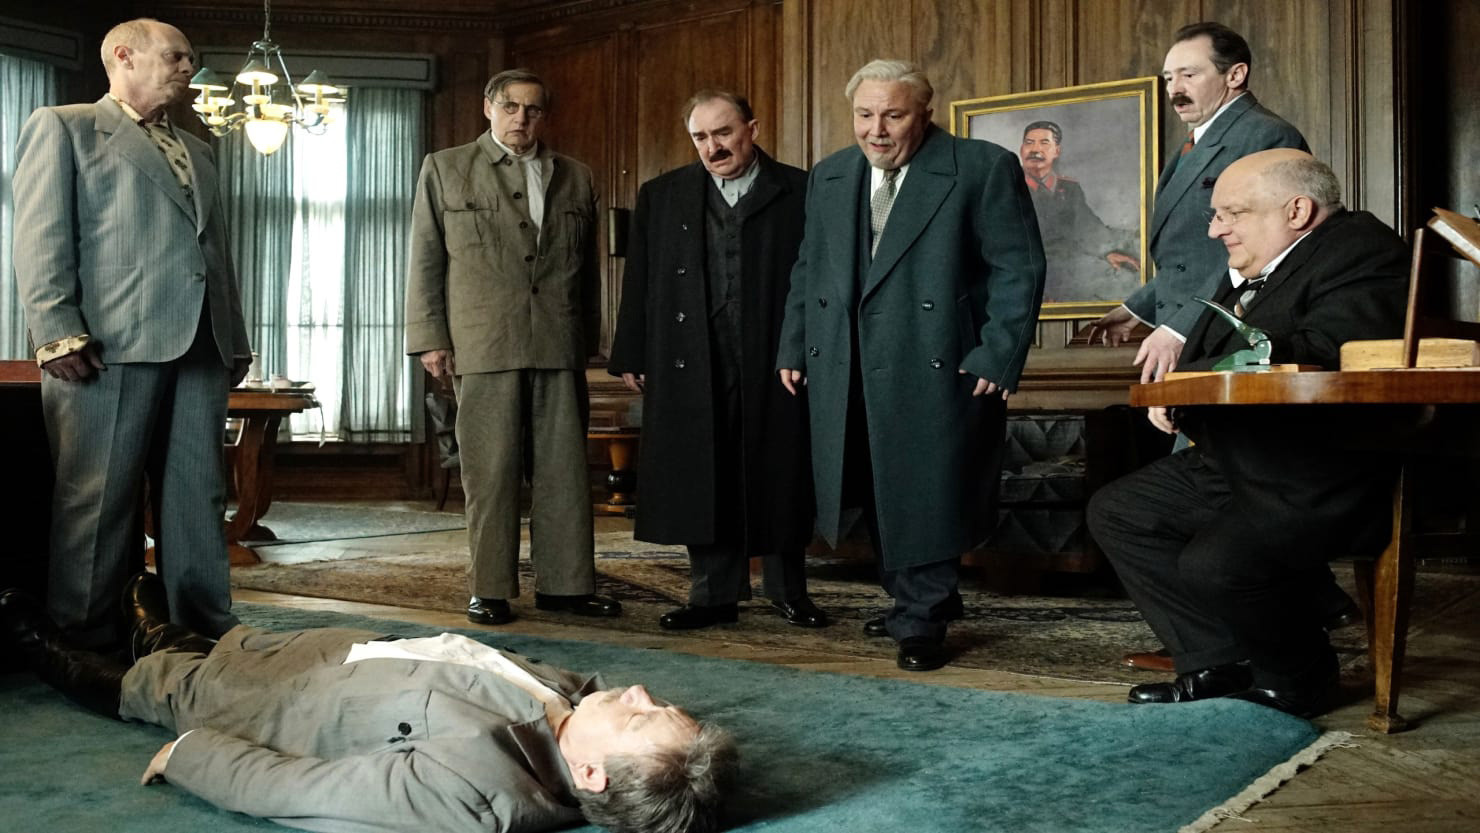 A still from the movie 'The Death of Stalin' (2017) by Armando Iannucci.